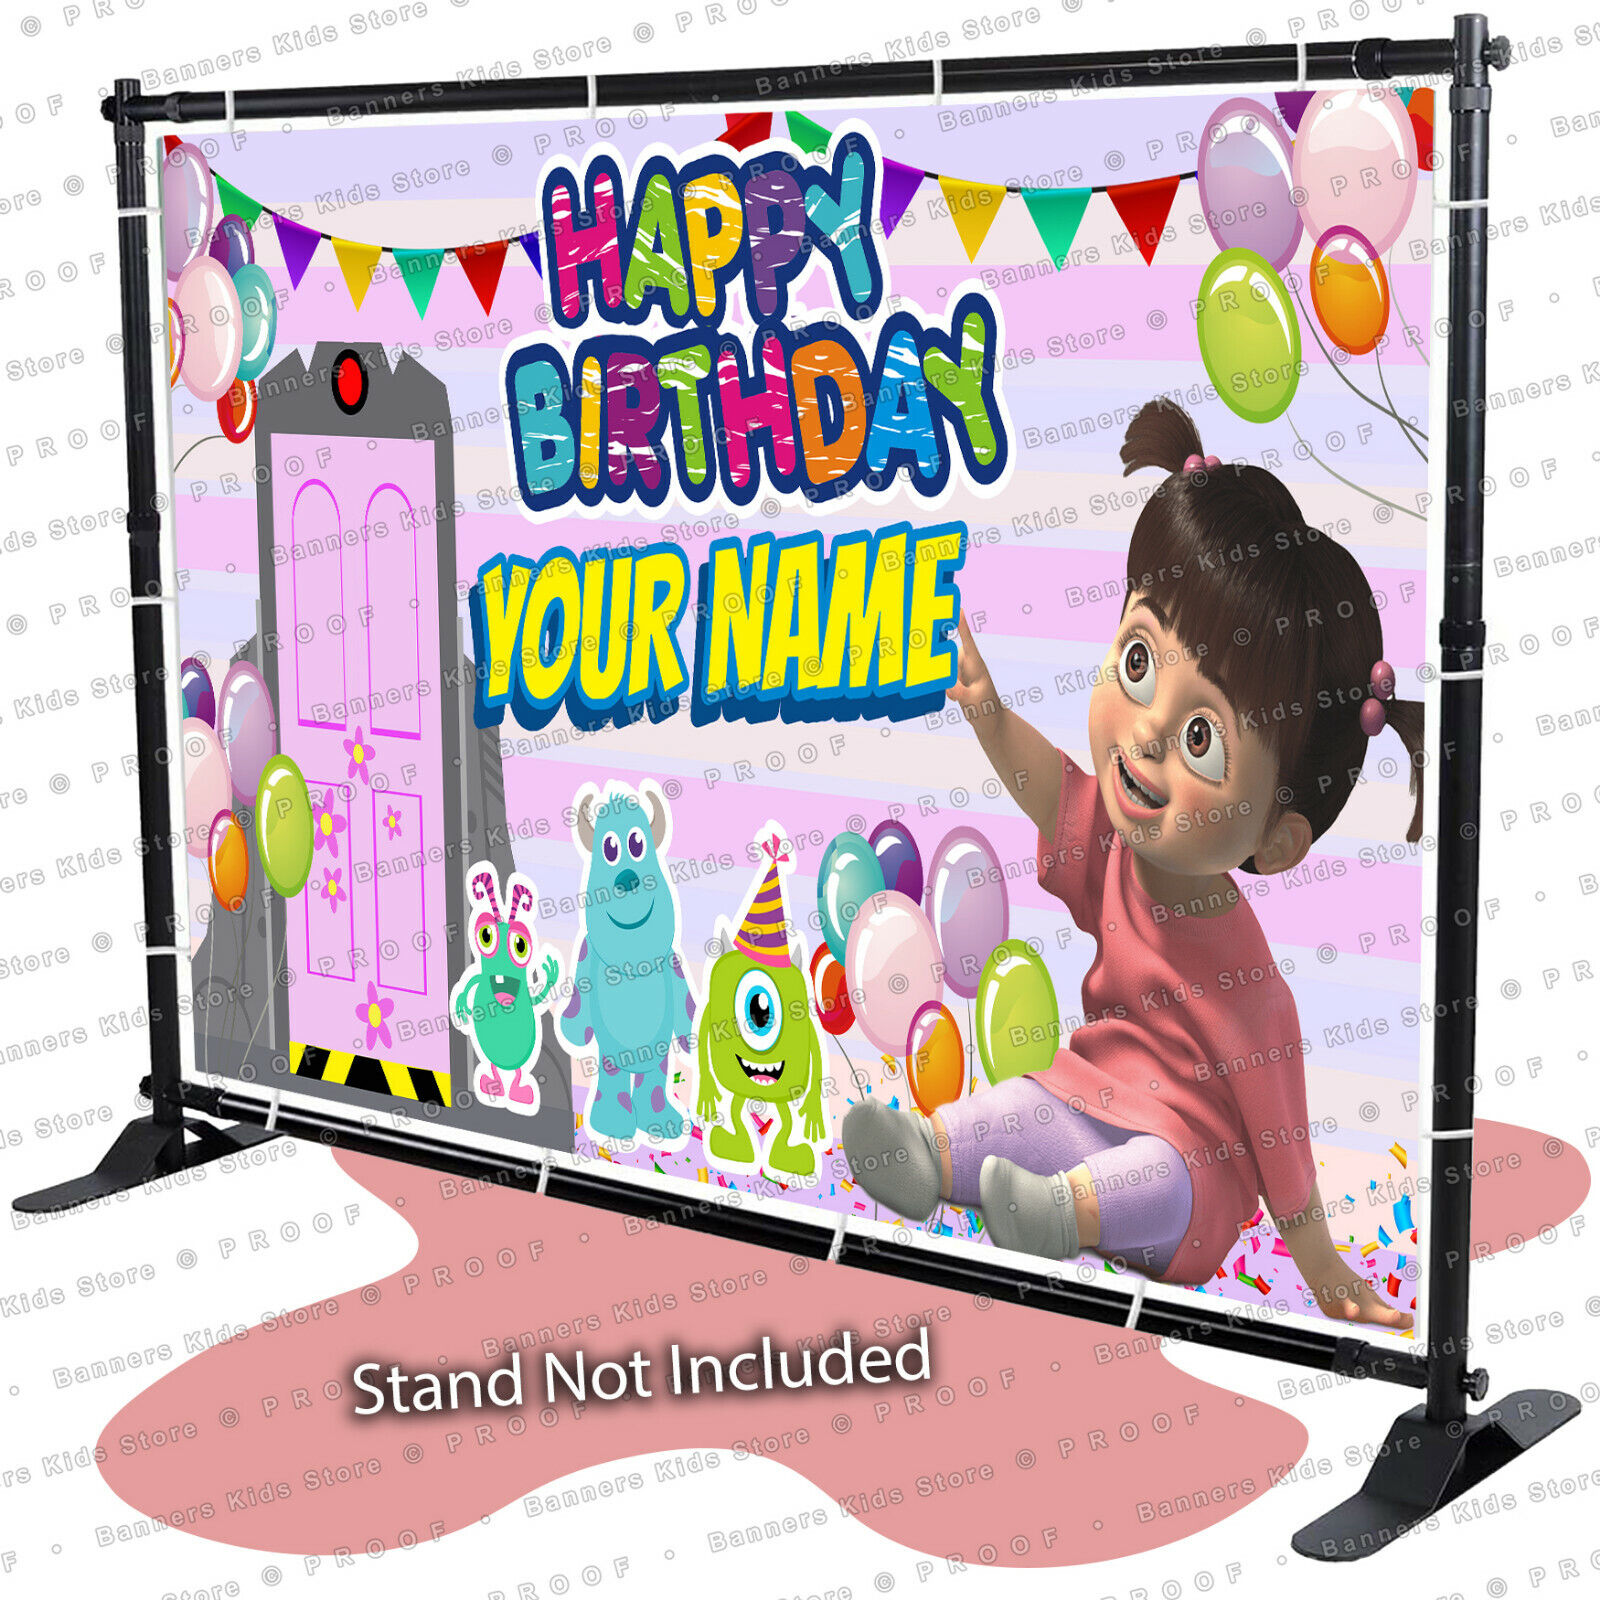 Monsters Inc Boo Door Birthday Banner Personalized Party Backdrop Kid Ebay